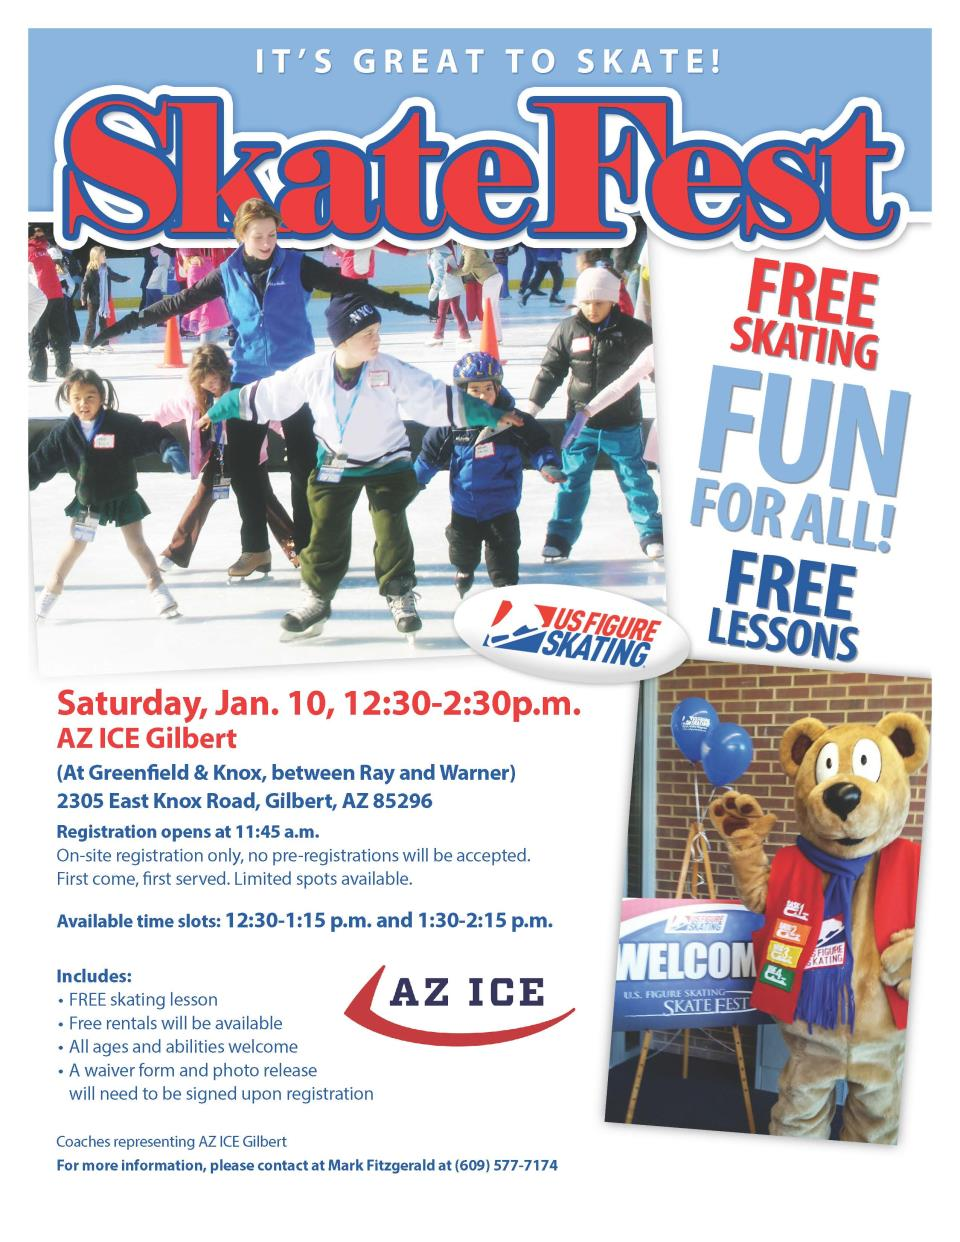 It's Skate Fest at AZ Ice Gilbert on Saturday, Jan. 10th